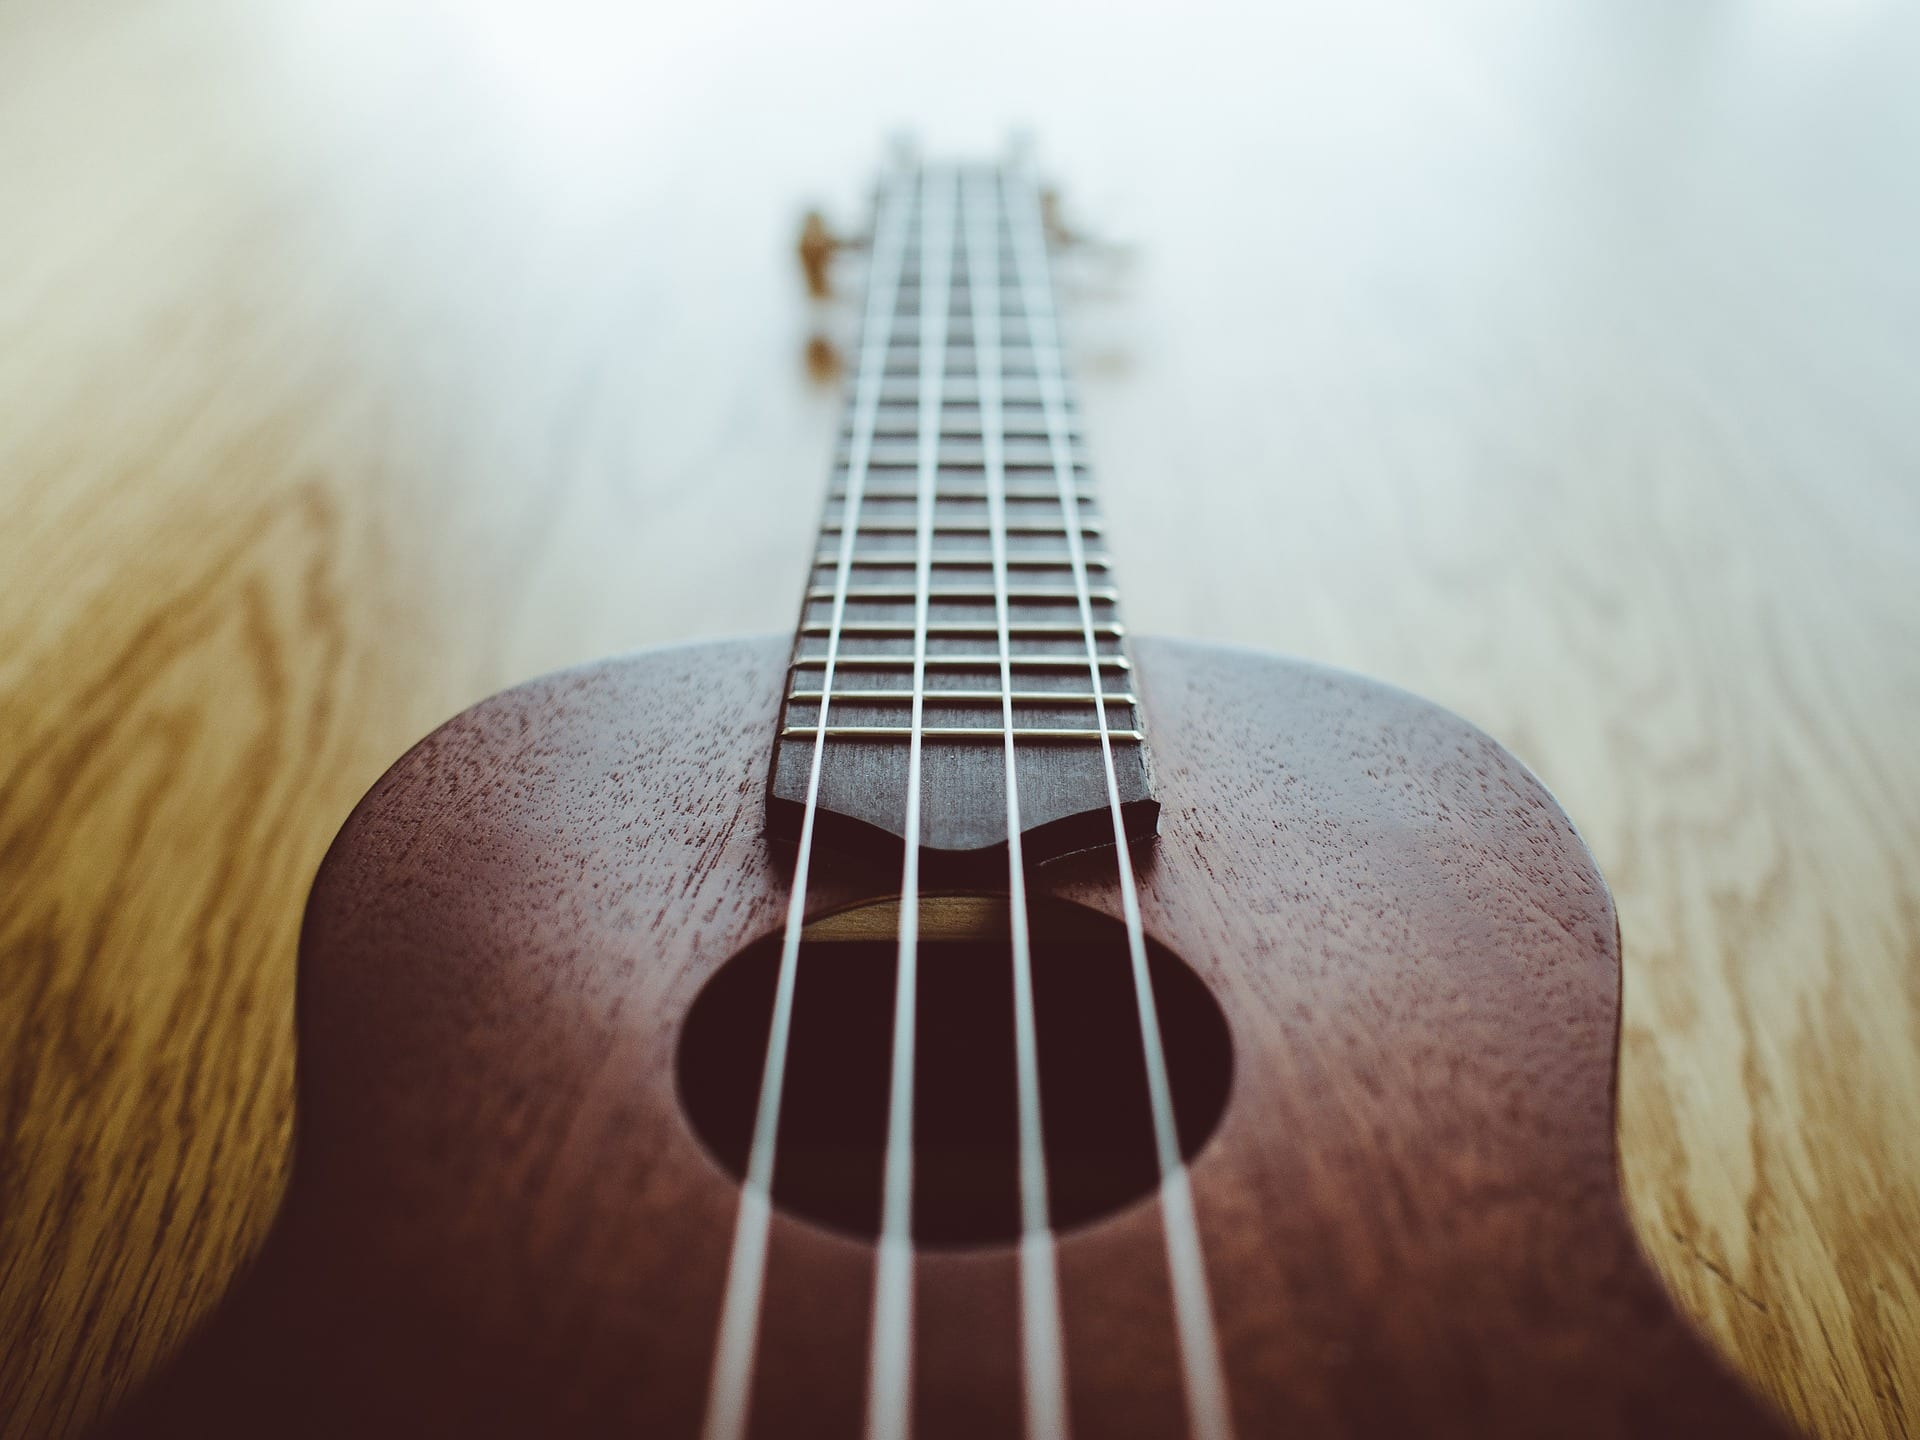 Beginner Ukulele Lessons | Learn to Play Ukulele